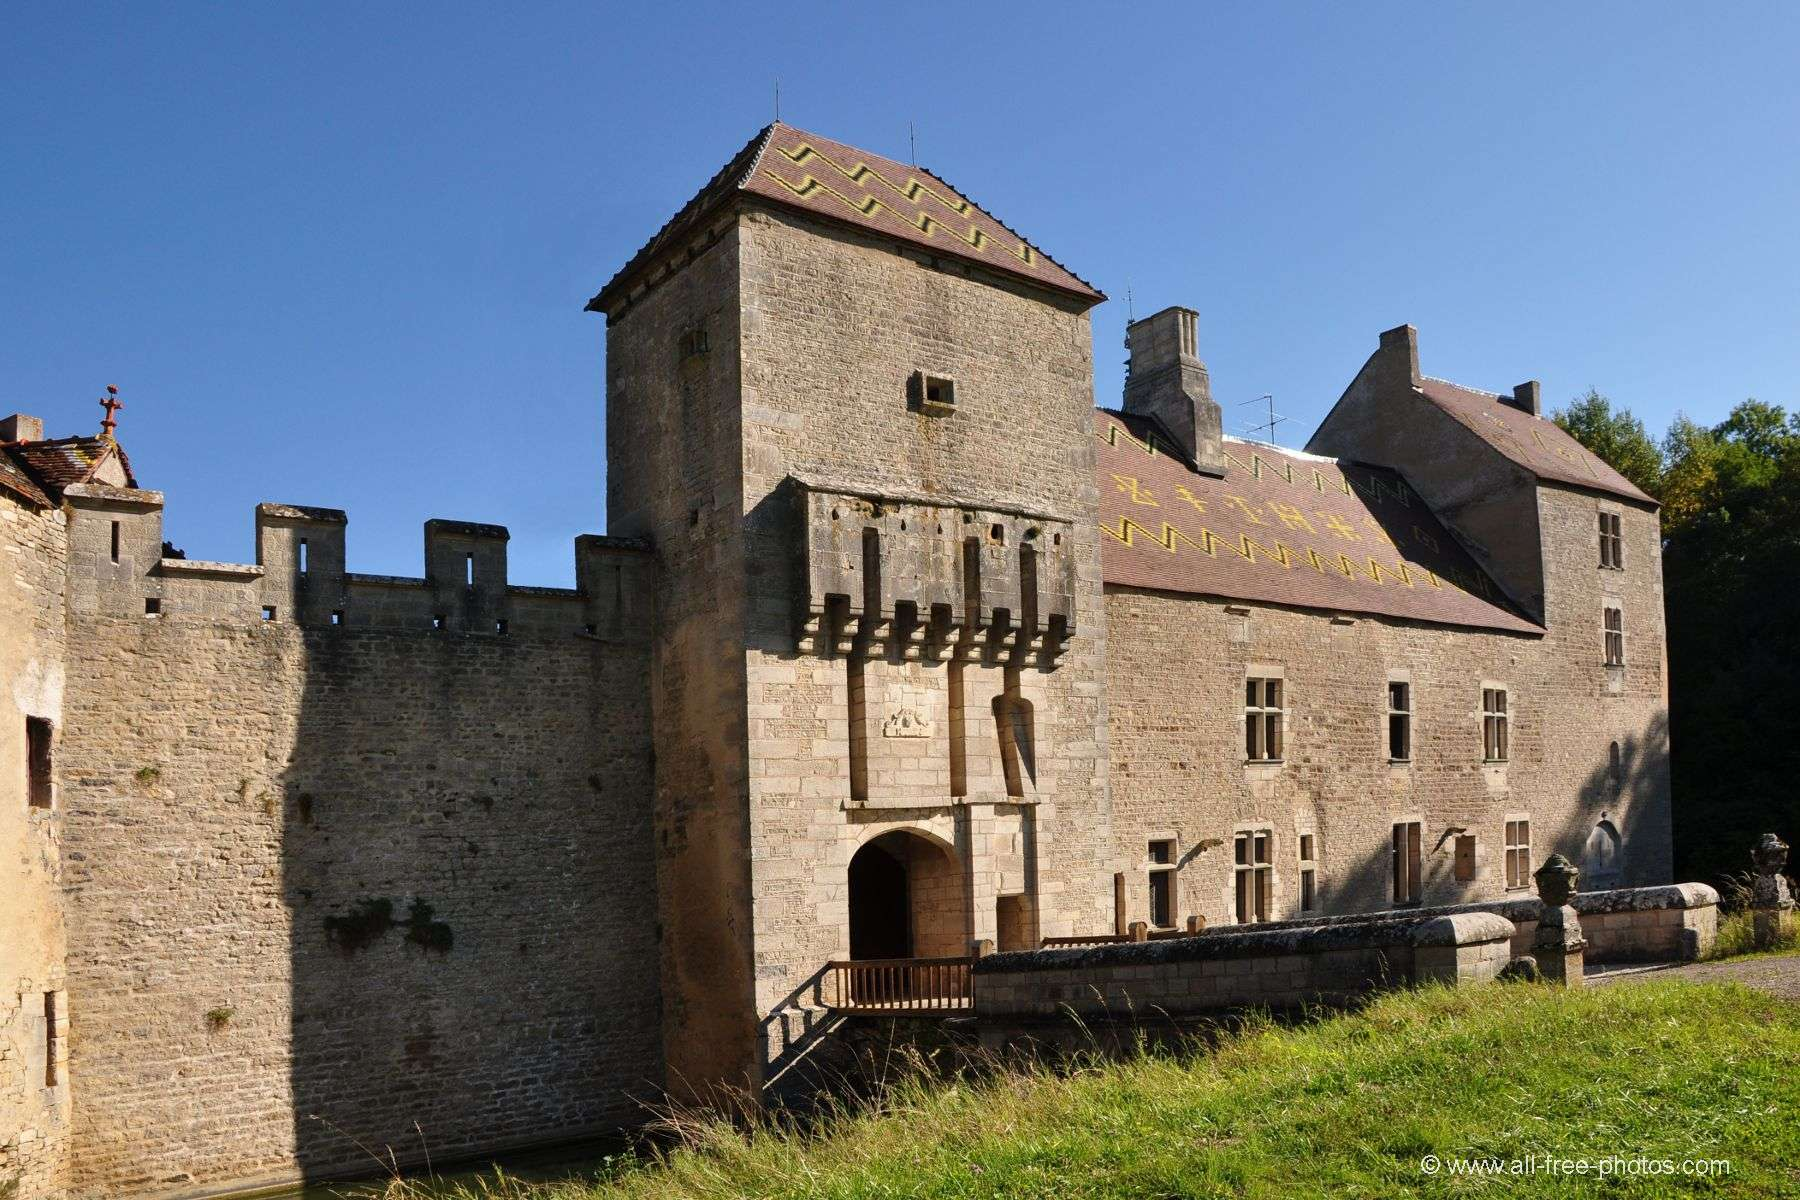 Castle of Marigny le Cahouët